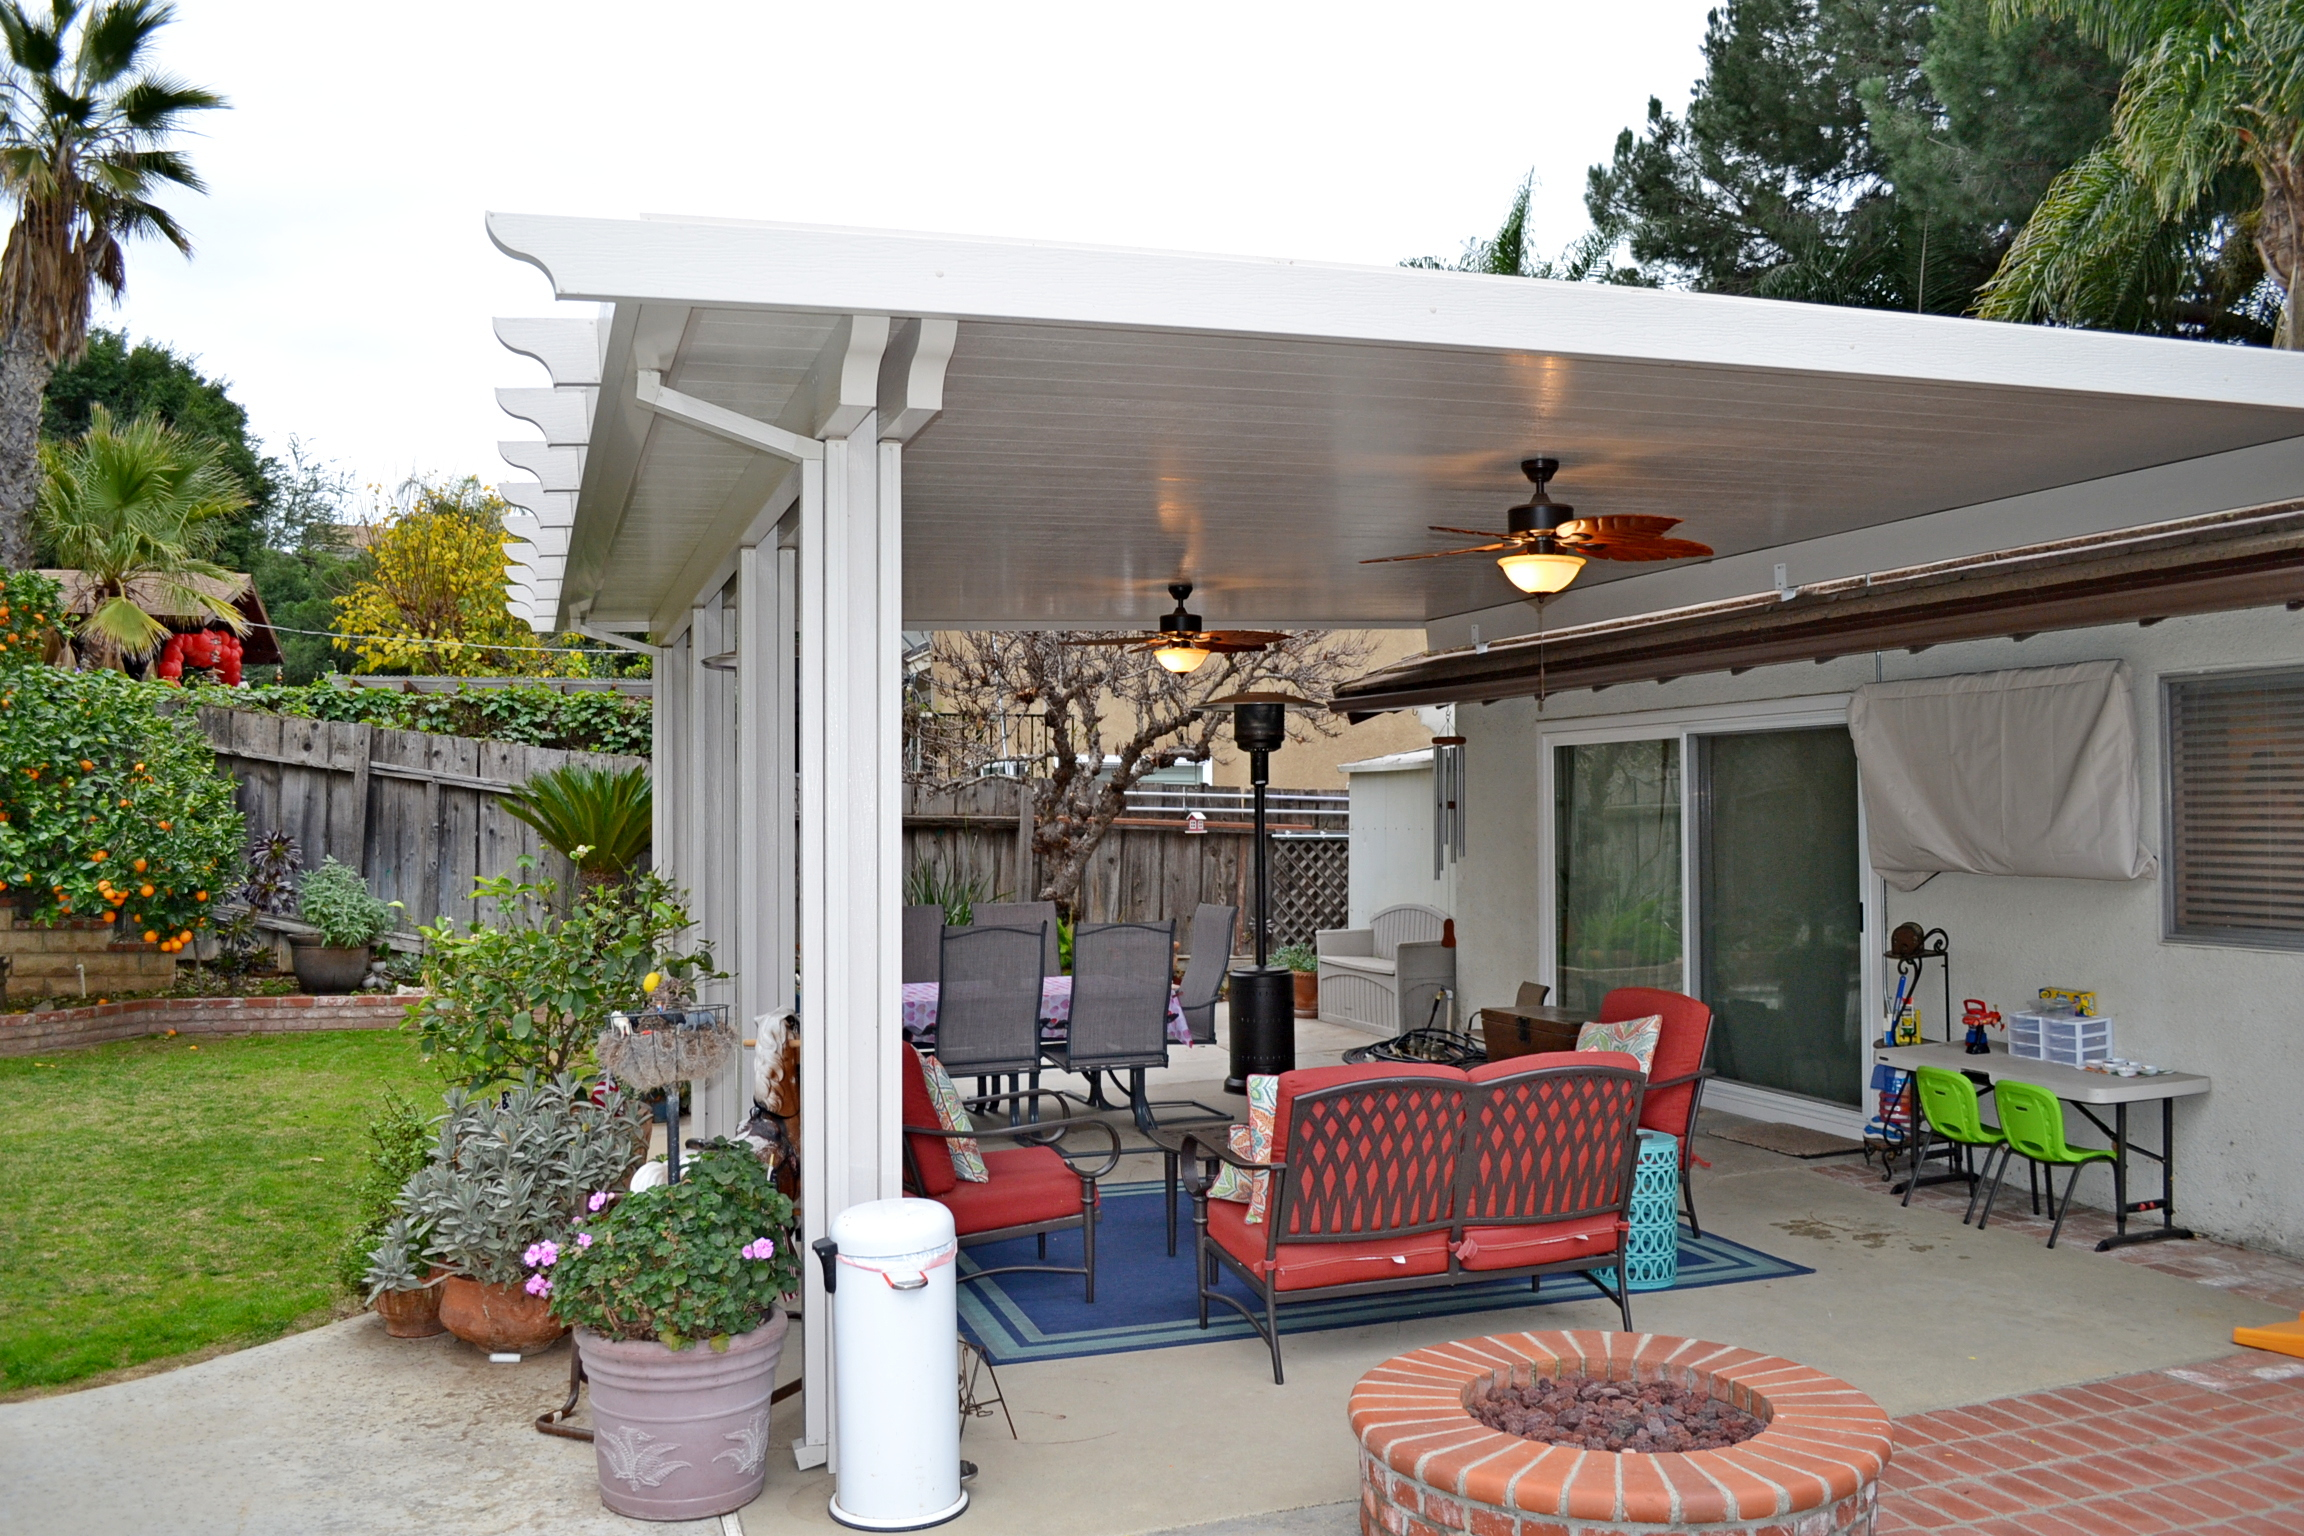 Project: Patio Cover and Malibu Glass Door Replacement Corona